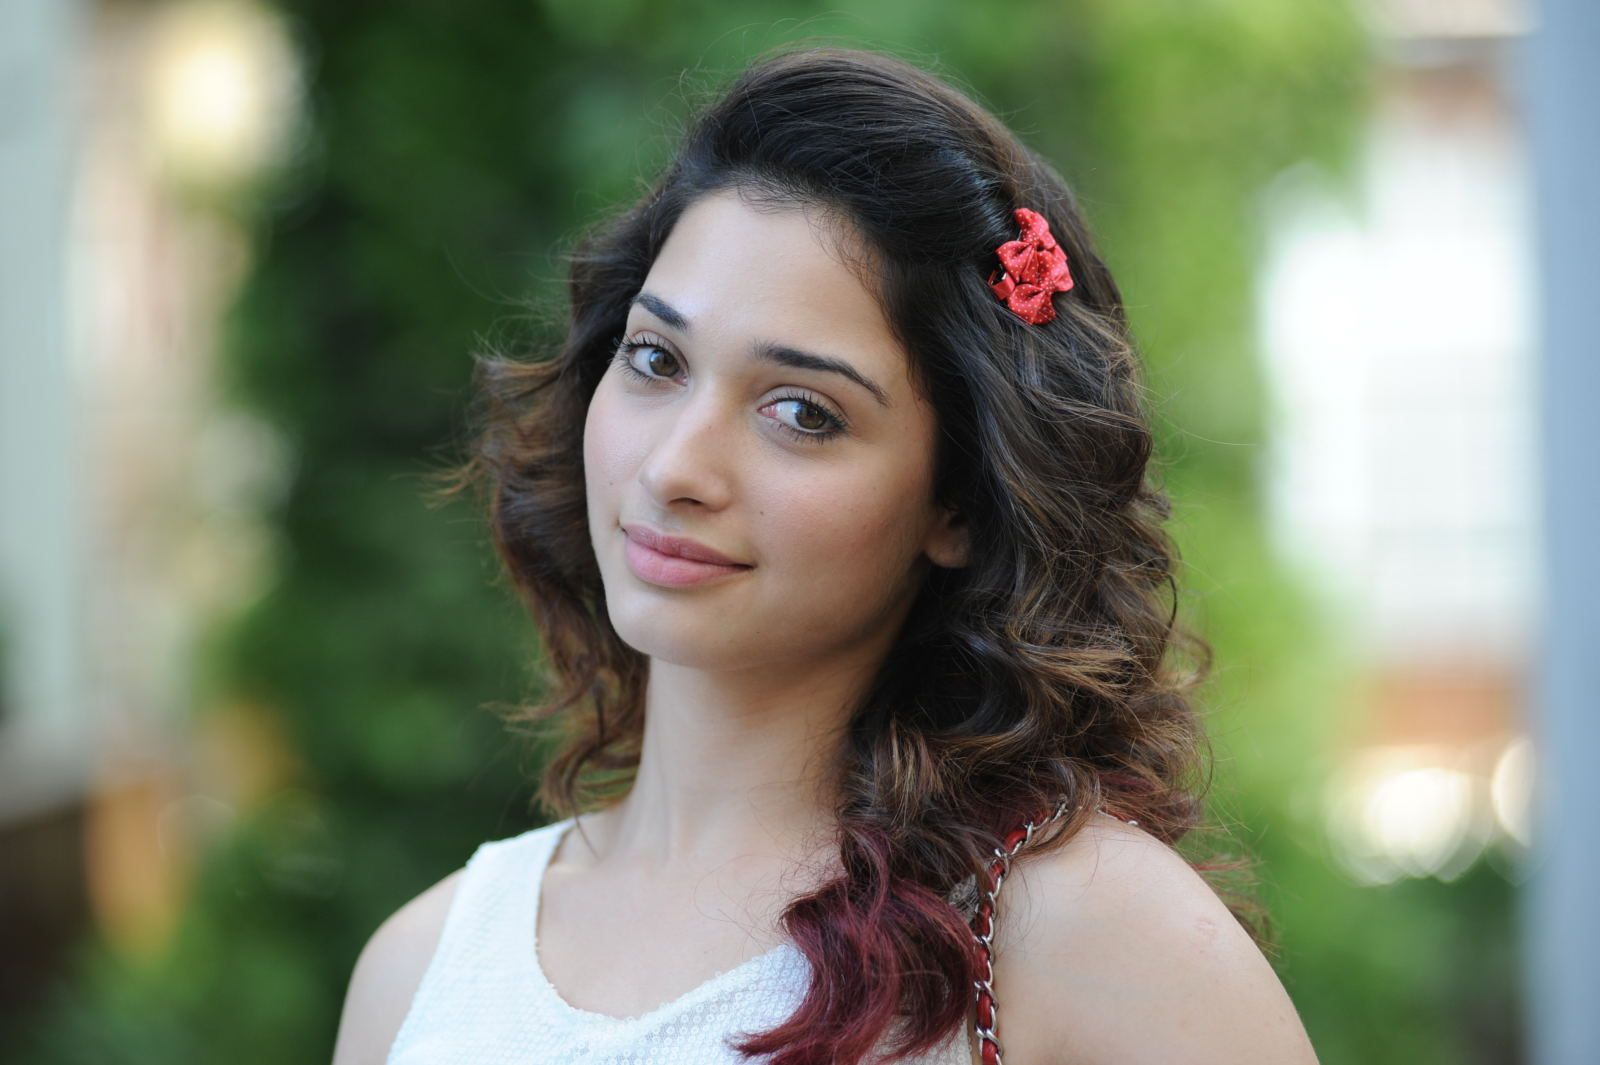 thamanna actress